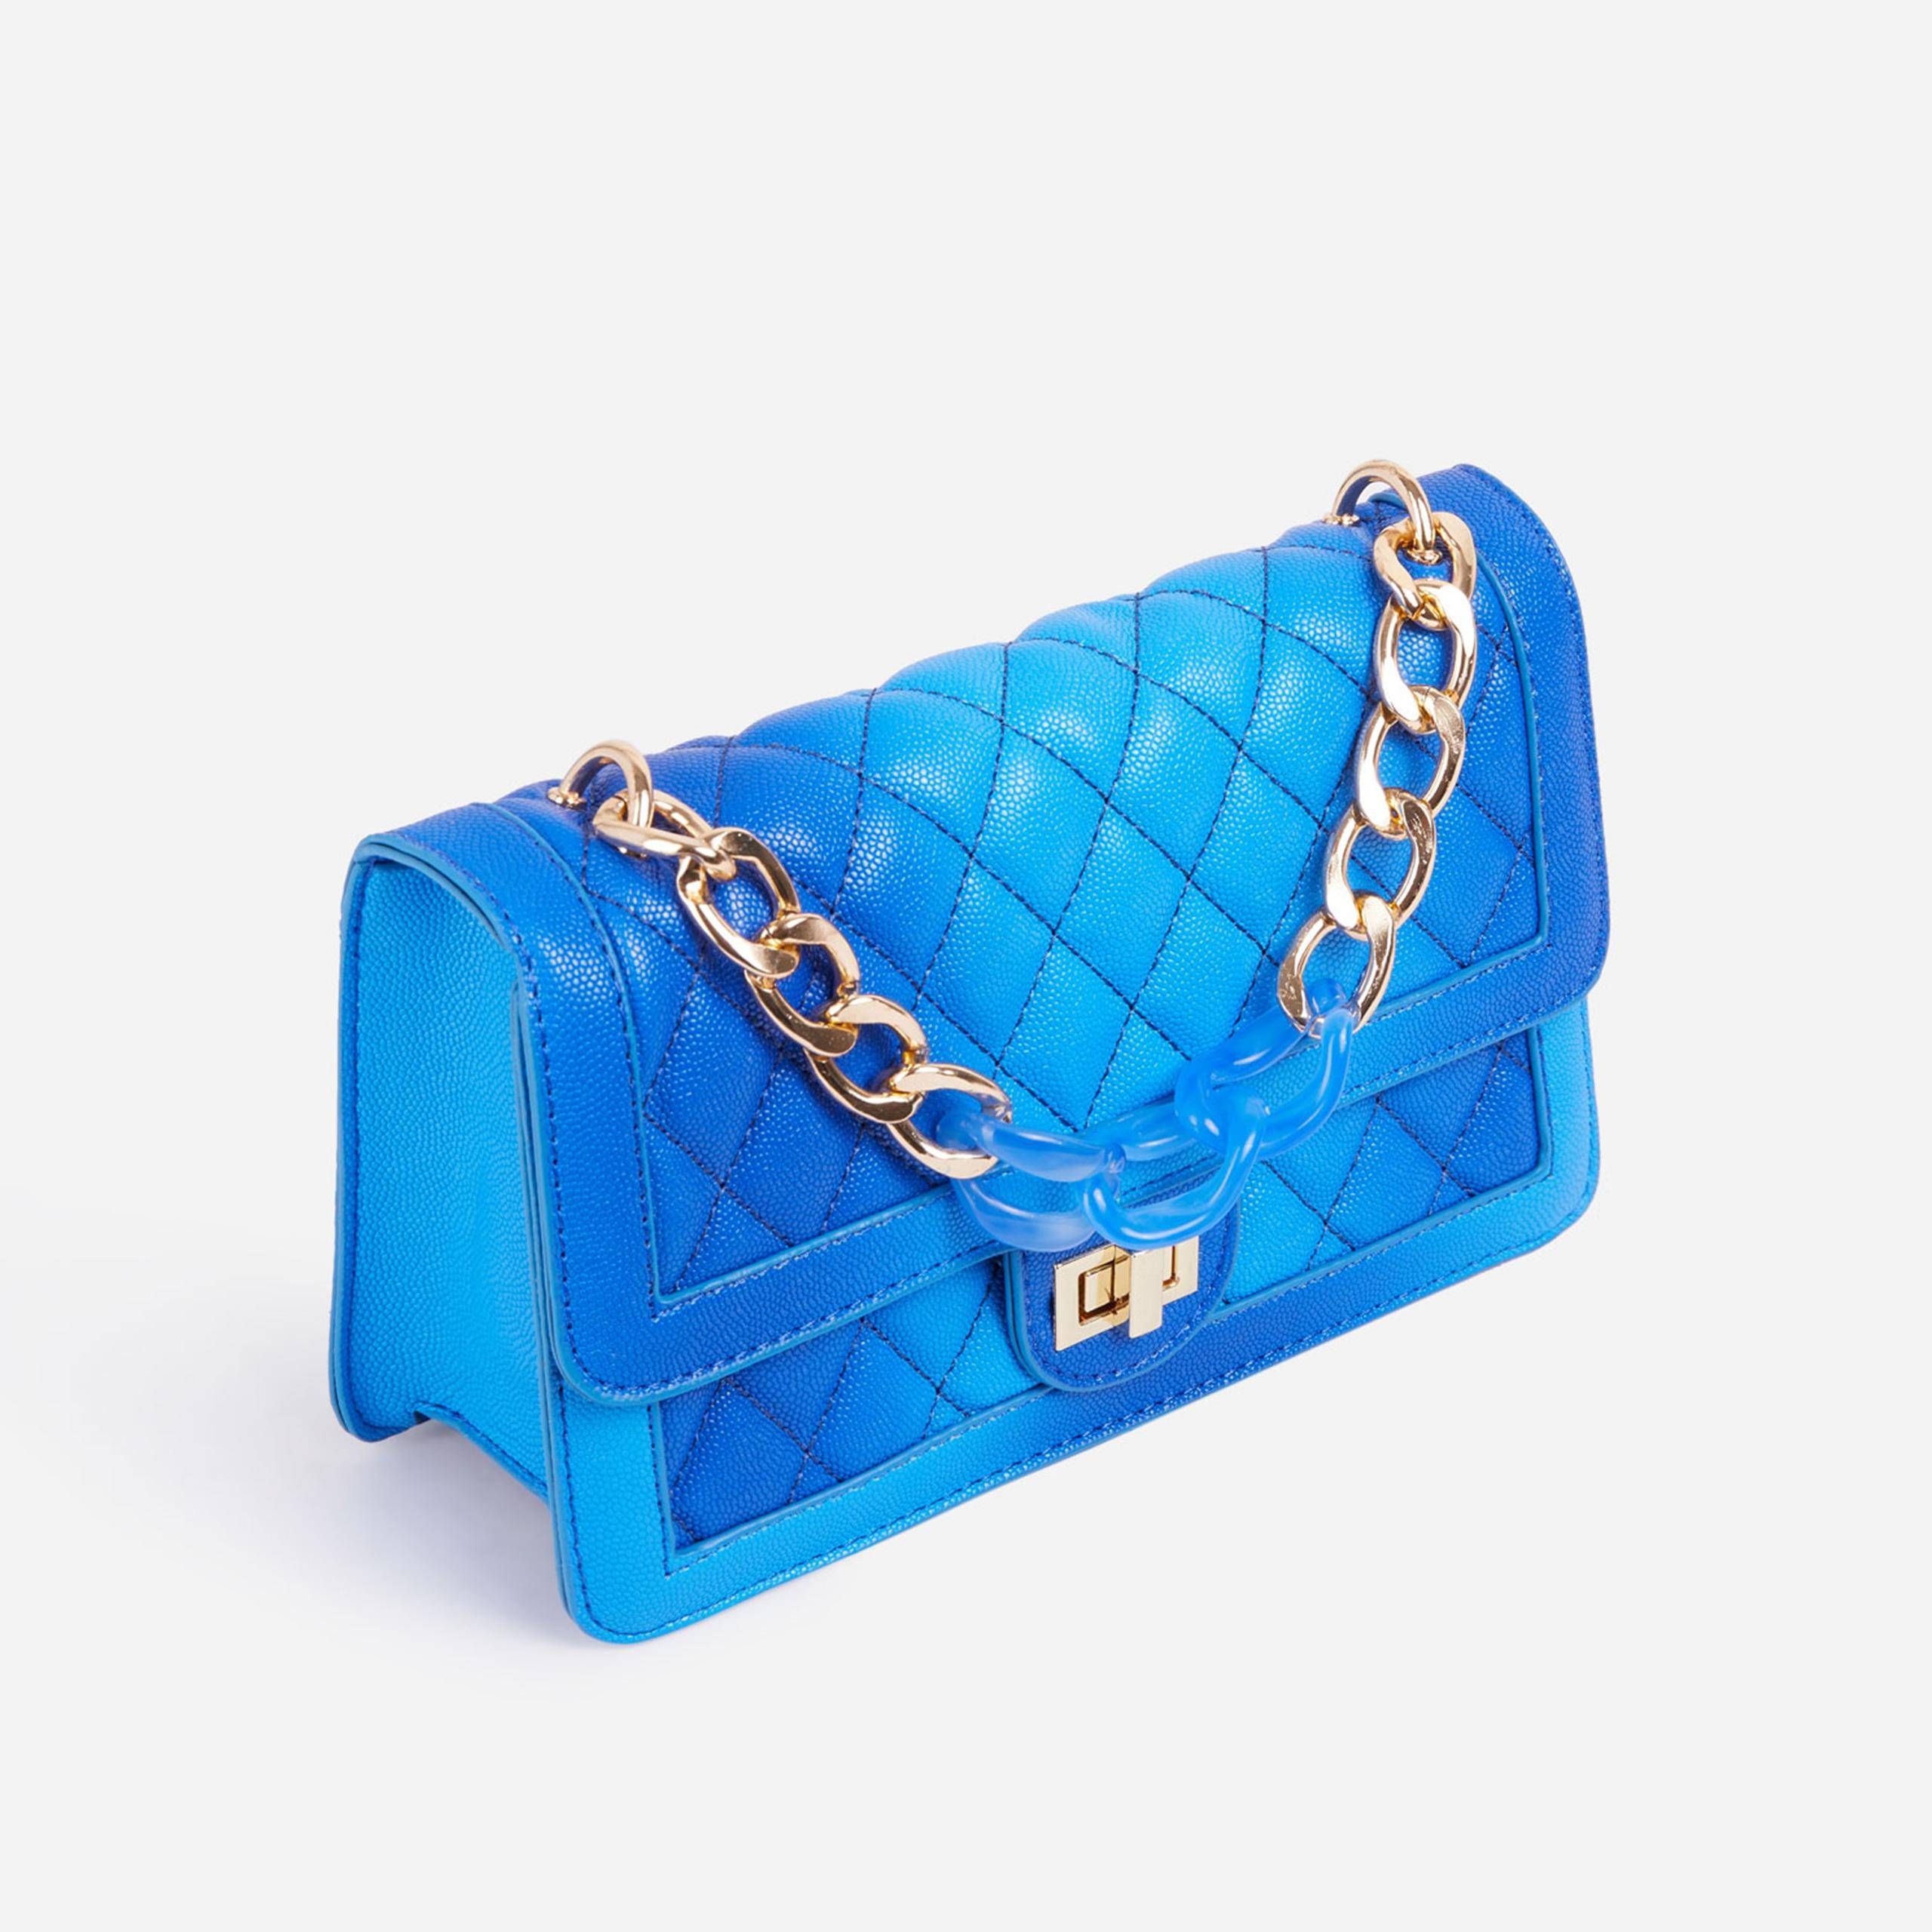 EGO Upton Contrast Chain Quilted Cross Body Bag In Blue Faux Leather,, Blue  - female - Size: One Size